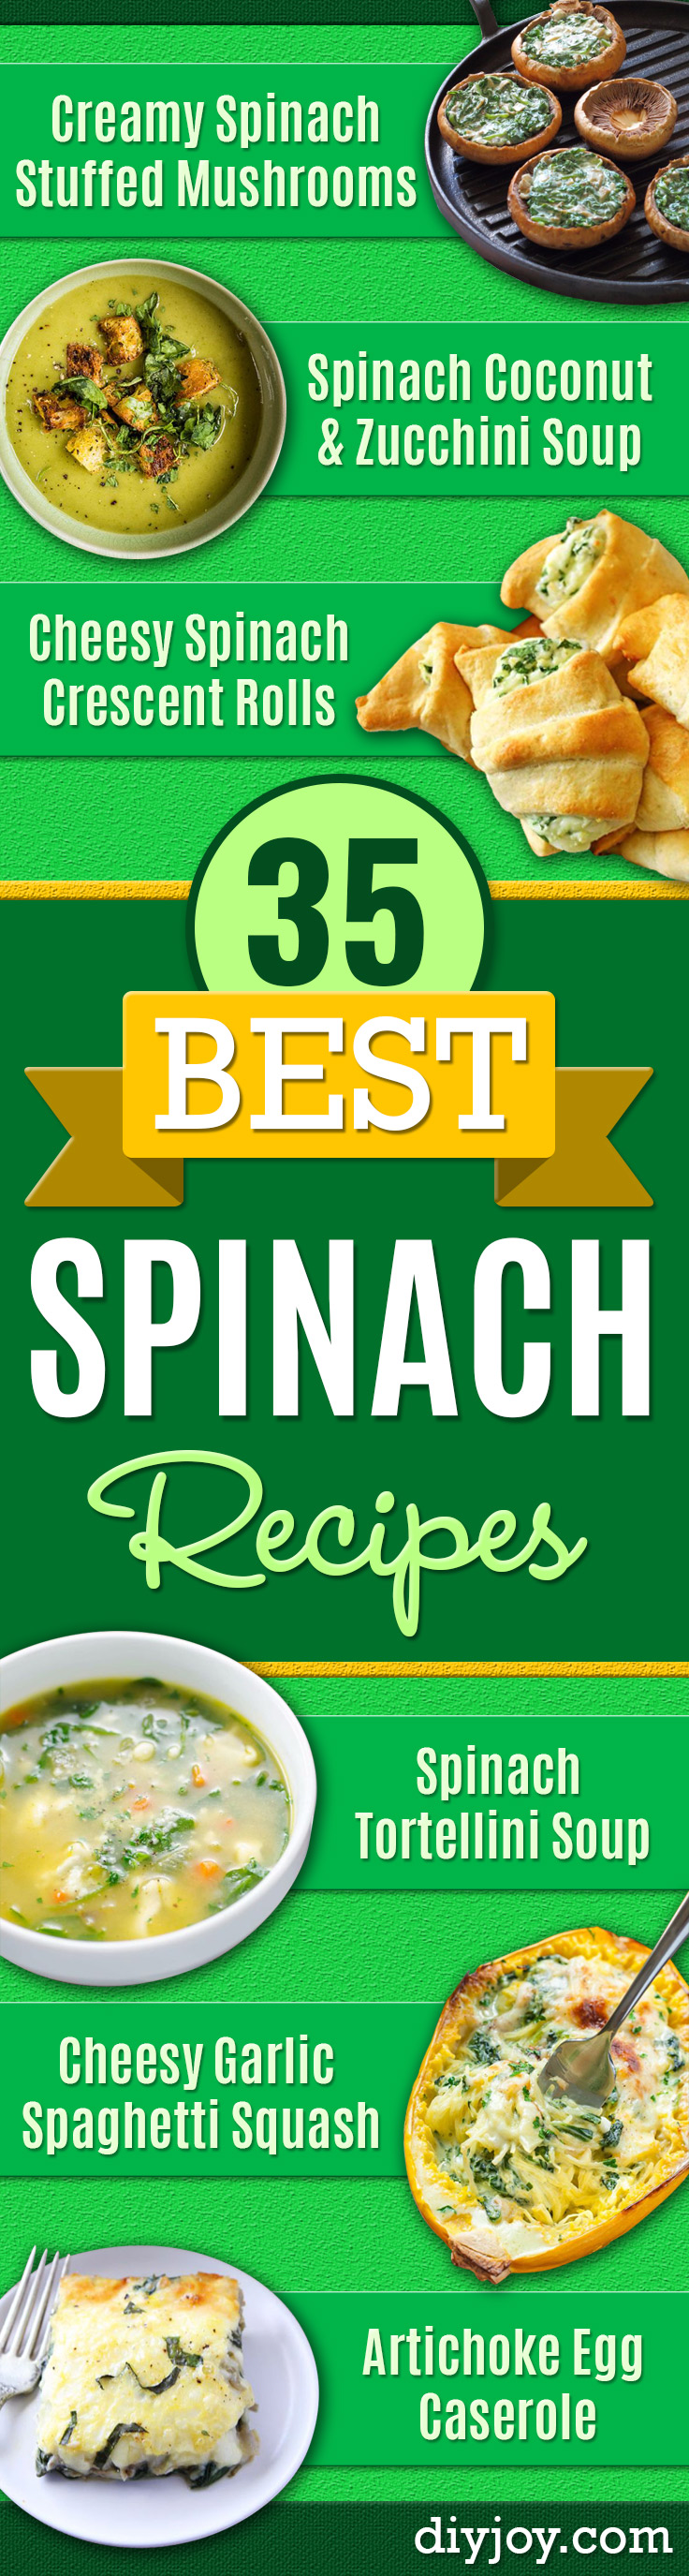 Best Spinach Recipes - Easy, Healthy Lowfat Recipe Ideas for Dinner, Salads, Lunches, Sides, Smoothies and Even Dessert - Qucik and Creative Ideas for Vegetables  - Cheesy, Creamed, Country Style Favorites for Family and For Kids http://diyjoy.com/best-spinach-recipes